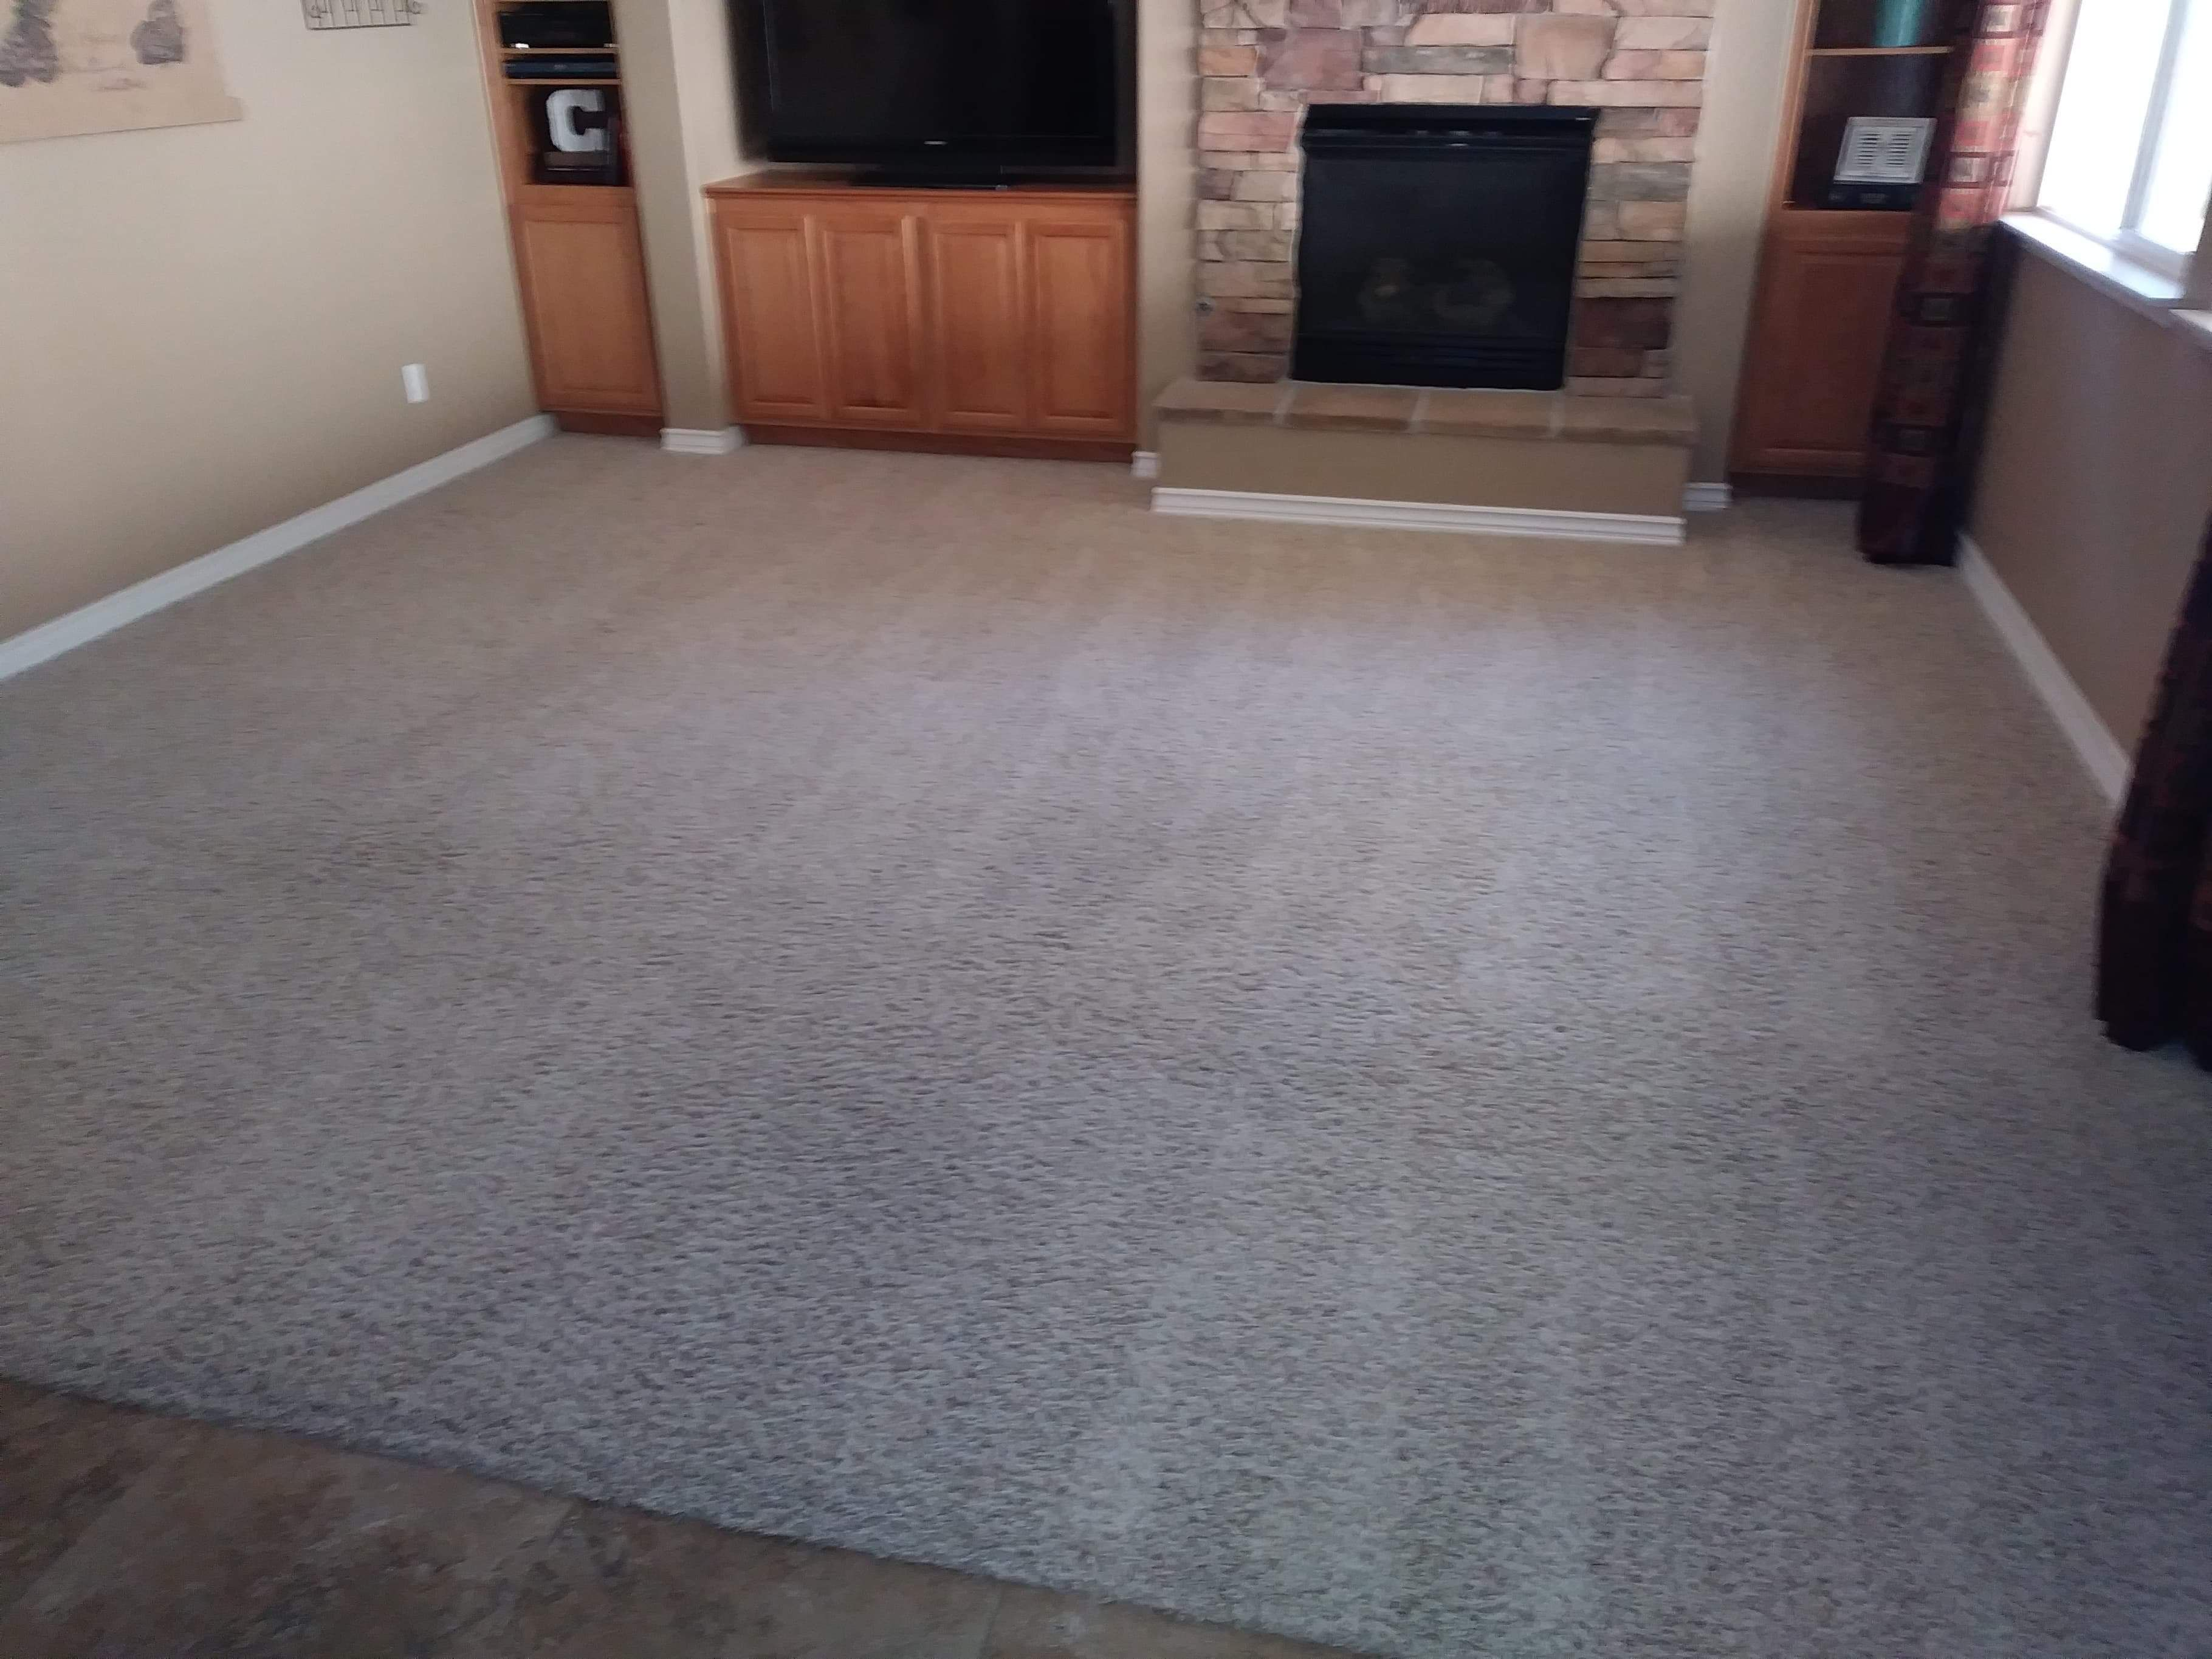 Carpet Cleaning After Riverside Ca 951 776 9198 3 Areas Carpet Cleaning 94 95 Www Blueskychemdry Com With Images Cleaning Upholstery How To Clean Carpet Area Carpet